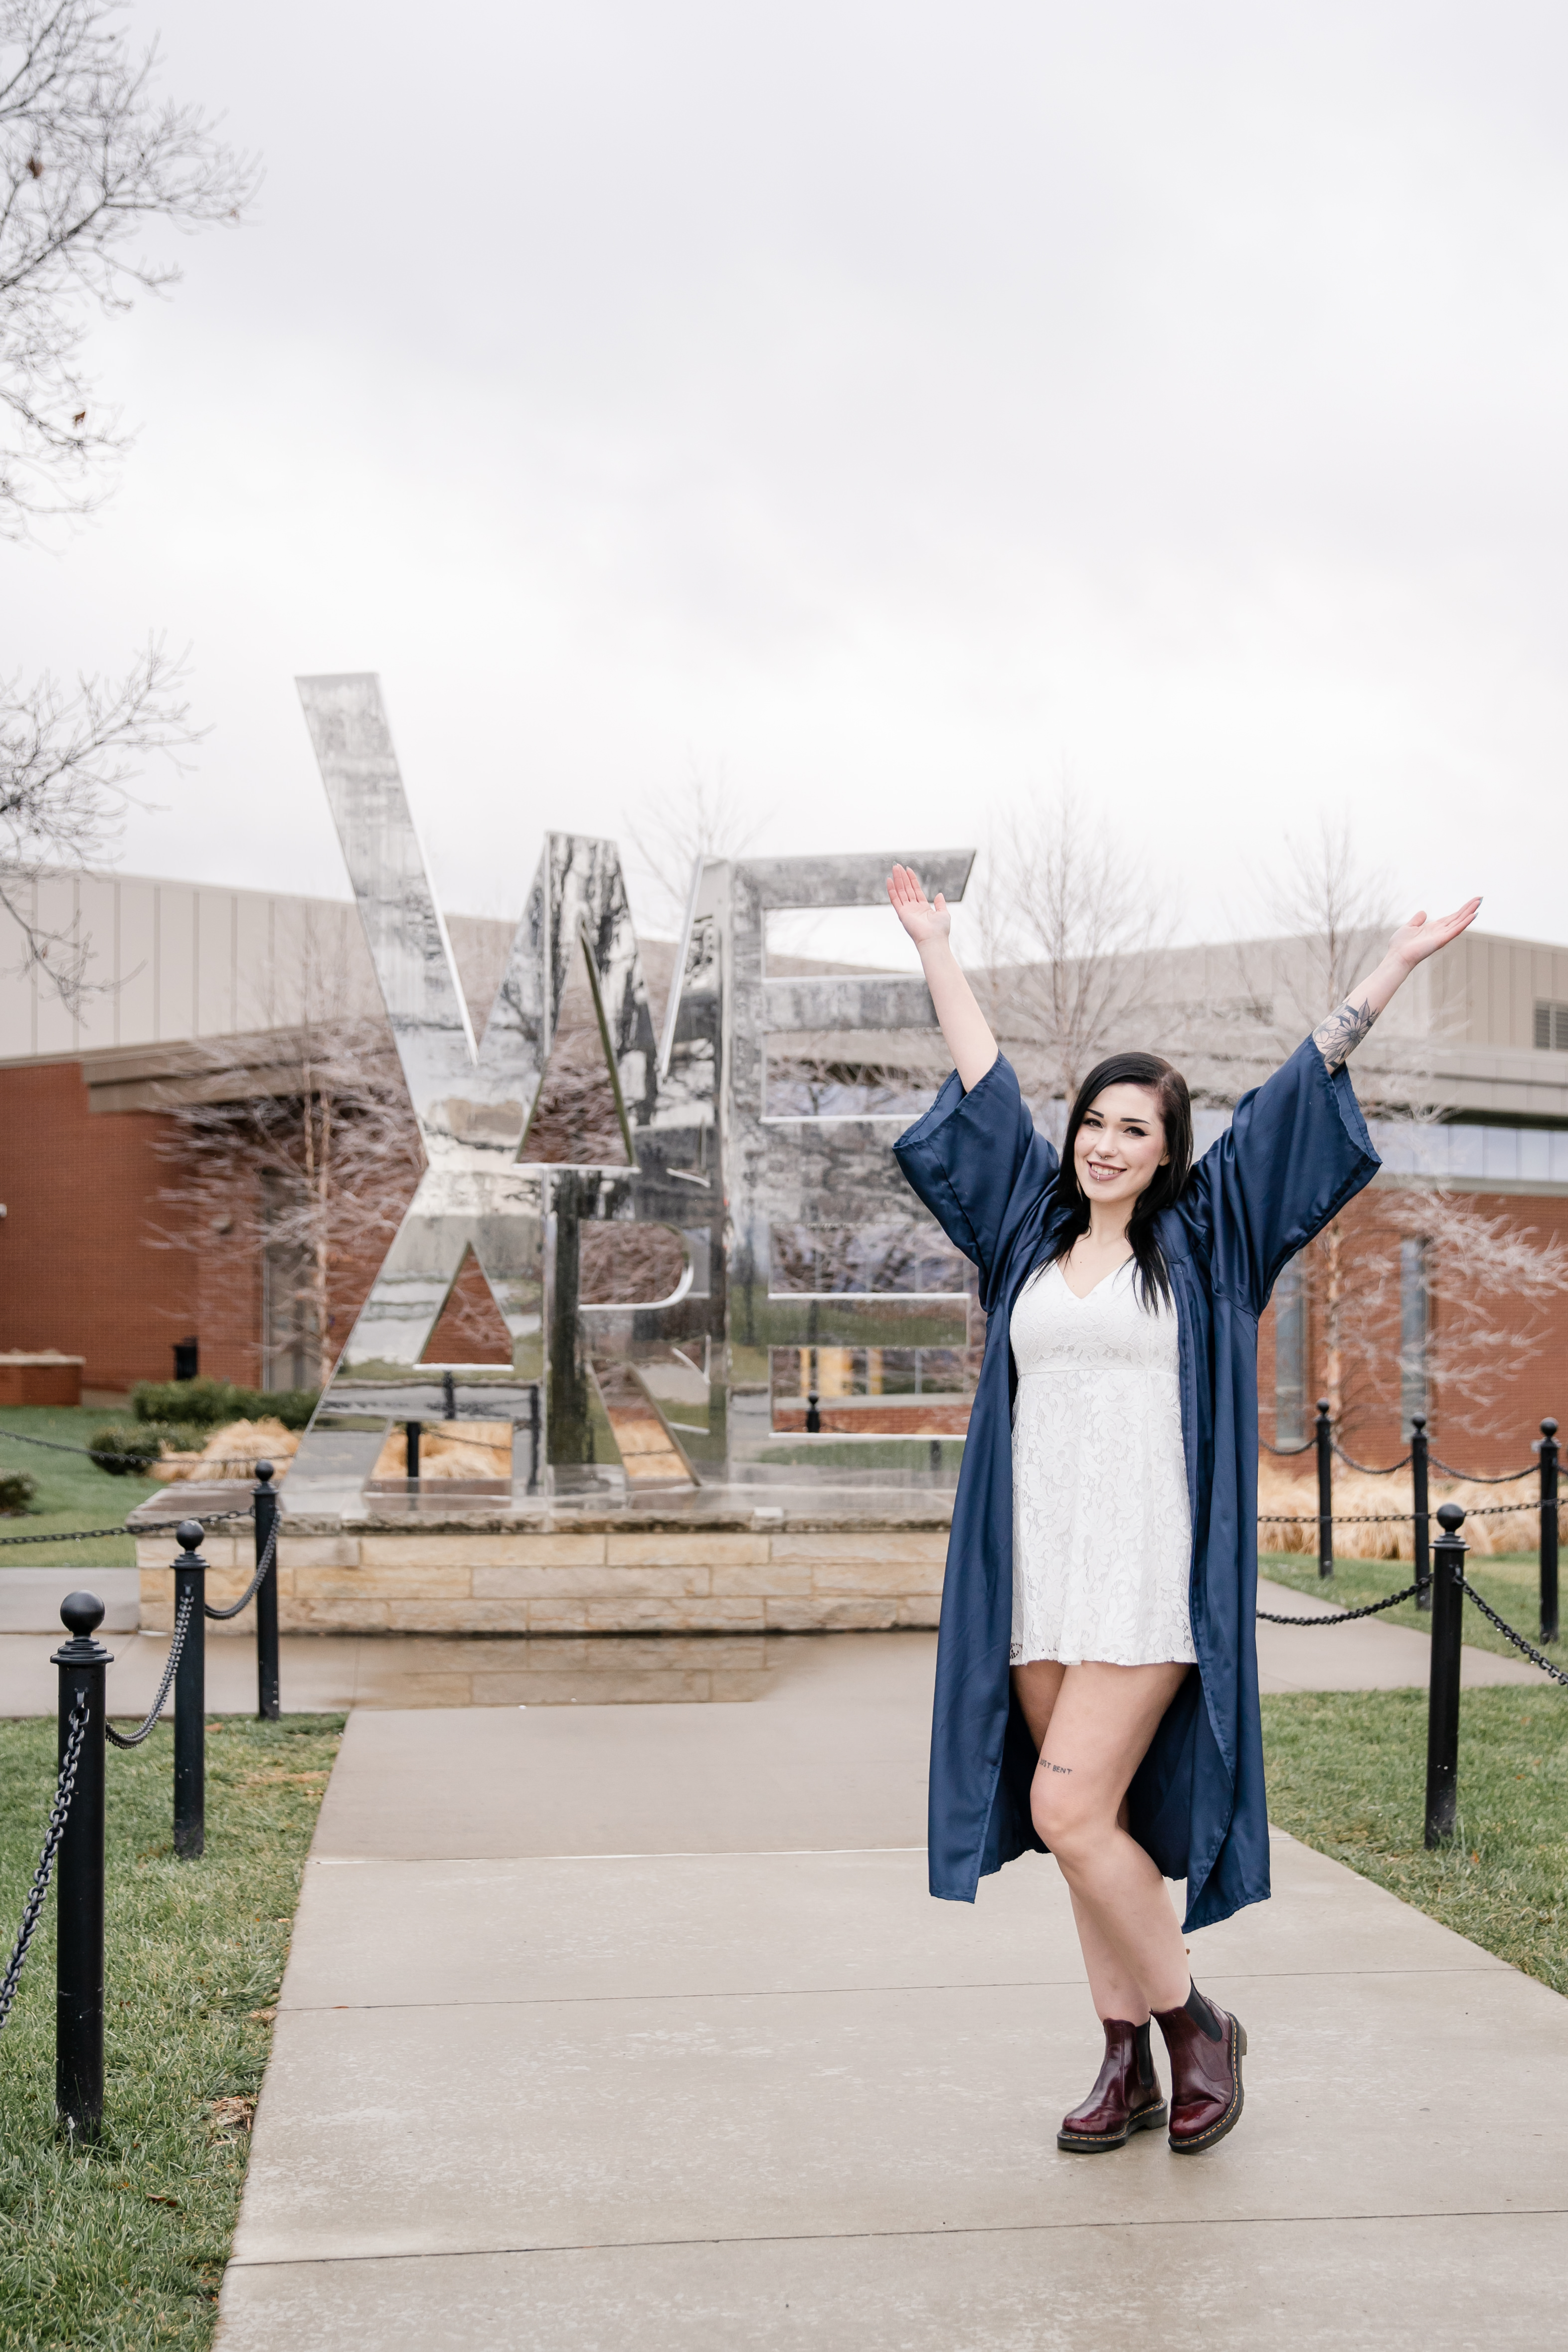 Penn State graduate at We Are sign